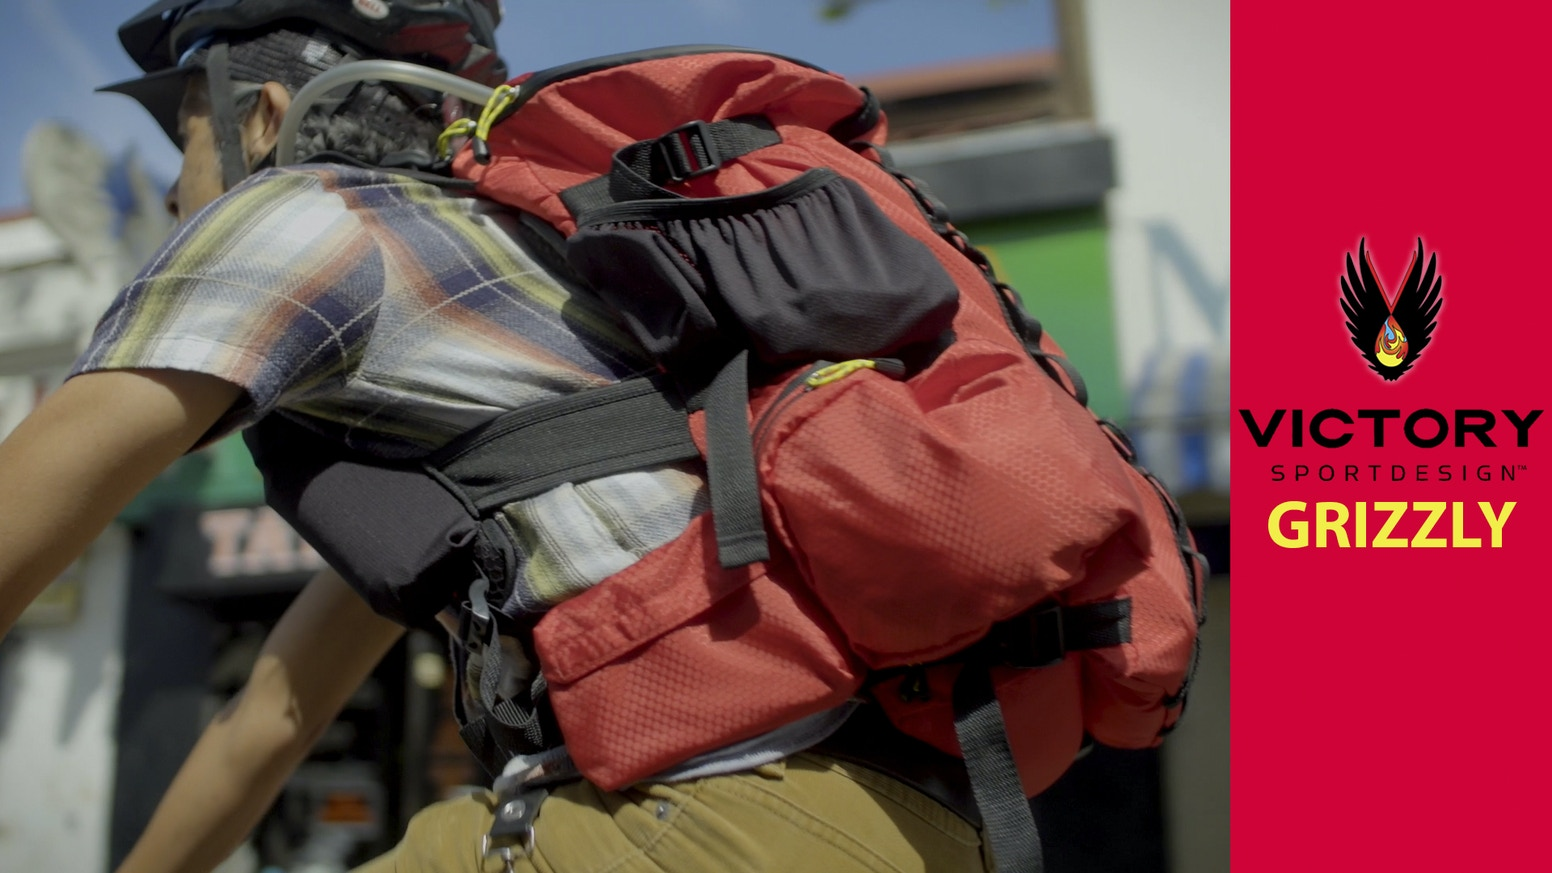 An organized, durable, water-resistant pack for commuting, fast-packing, adventuring and travel security.